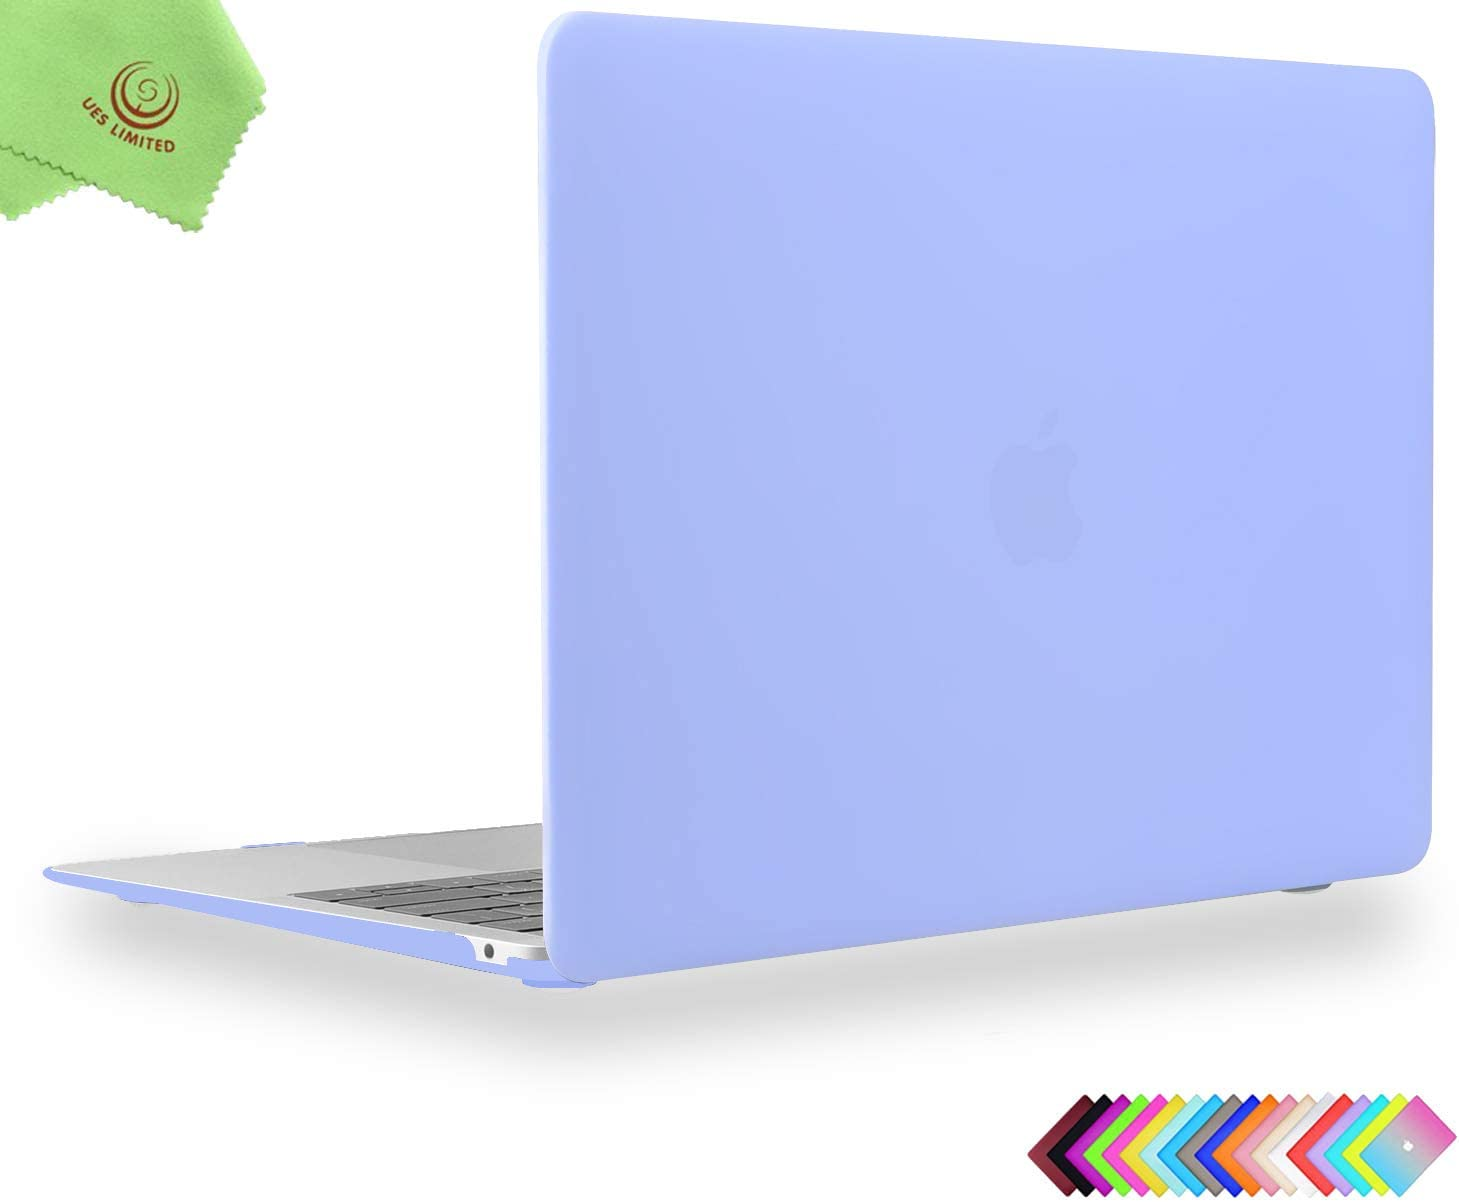 UESWILL Smooth Matte Hard Shell Case Cover for 2020 2019 2018 MacBook Air 13 inch Retina Display & Touch ID & USB-C Model A2179 A1932 + Microfibre Cleaning Cloth, Serenity Blue